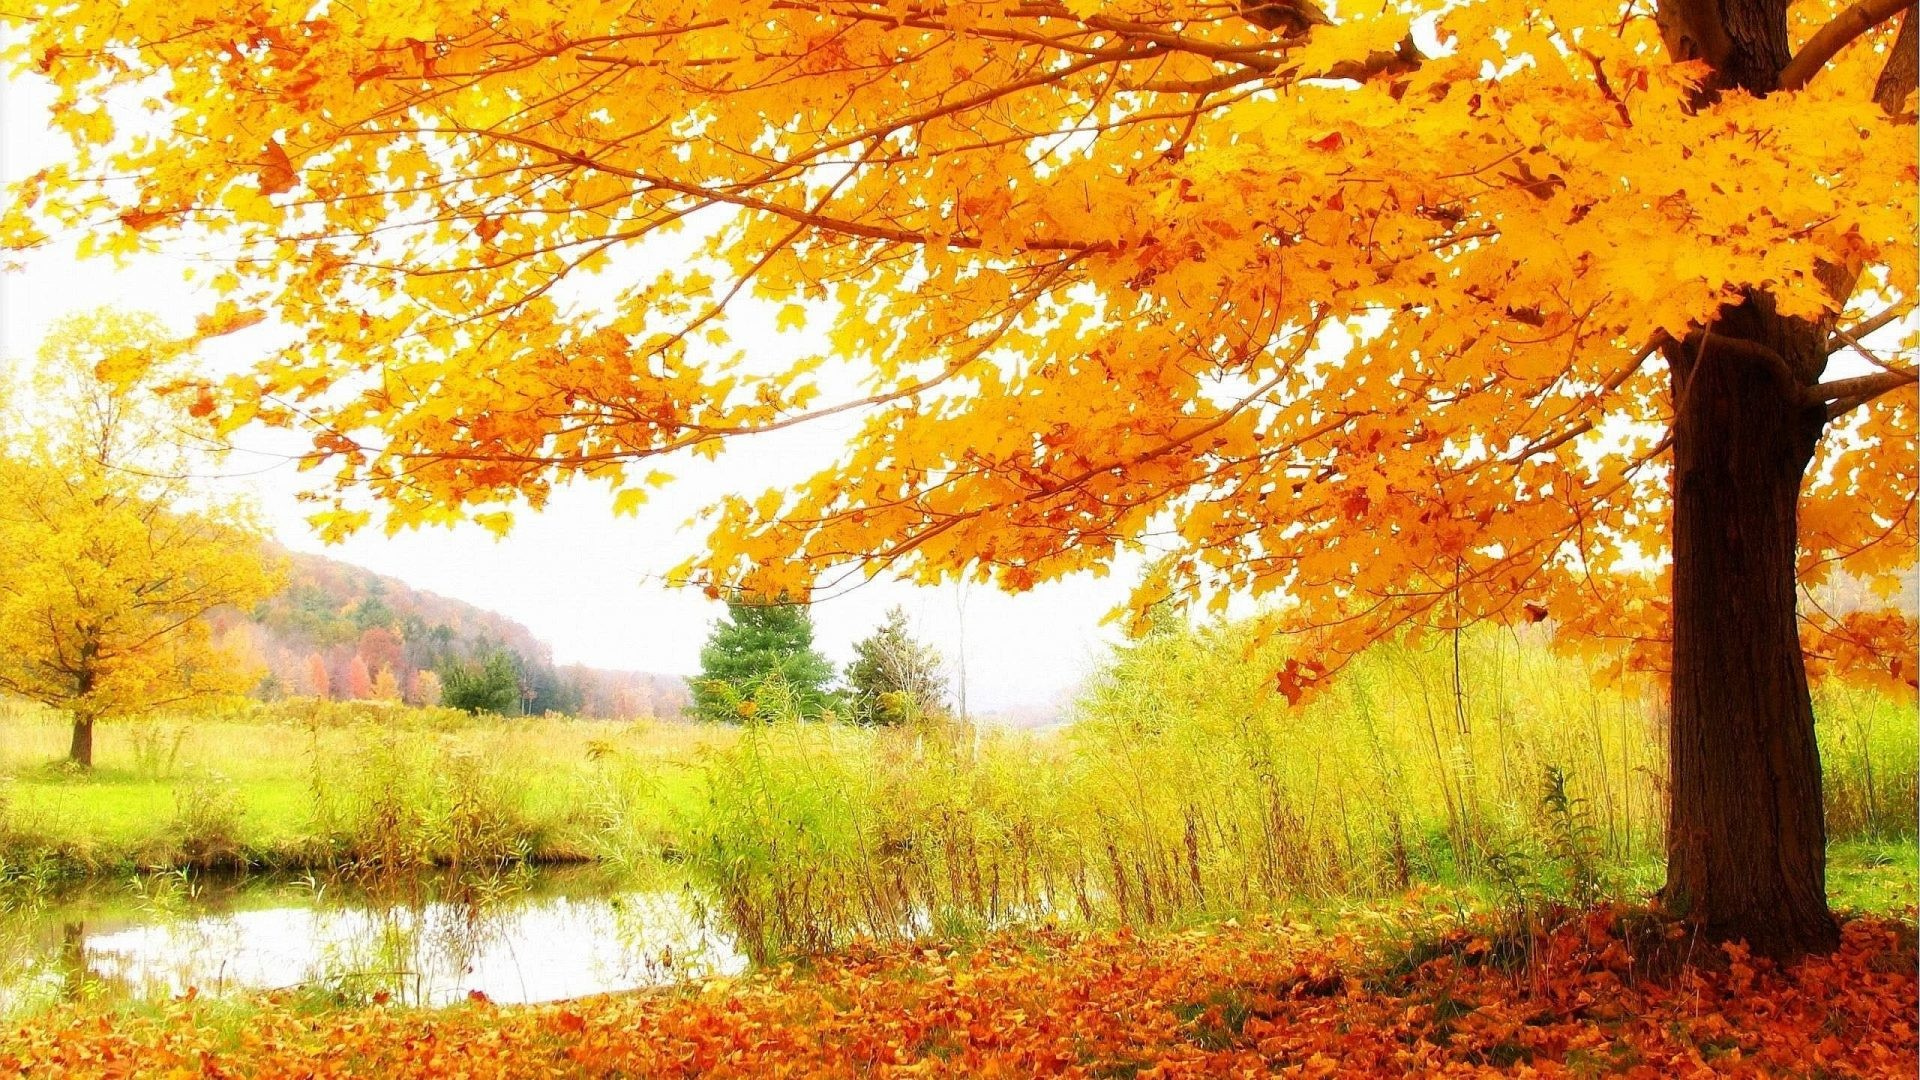 Autumn Tag – Nature Trees Leaf Landscape Leaves Autumn Awesome Photos Hd  for HD 16: